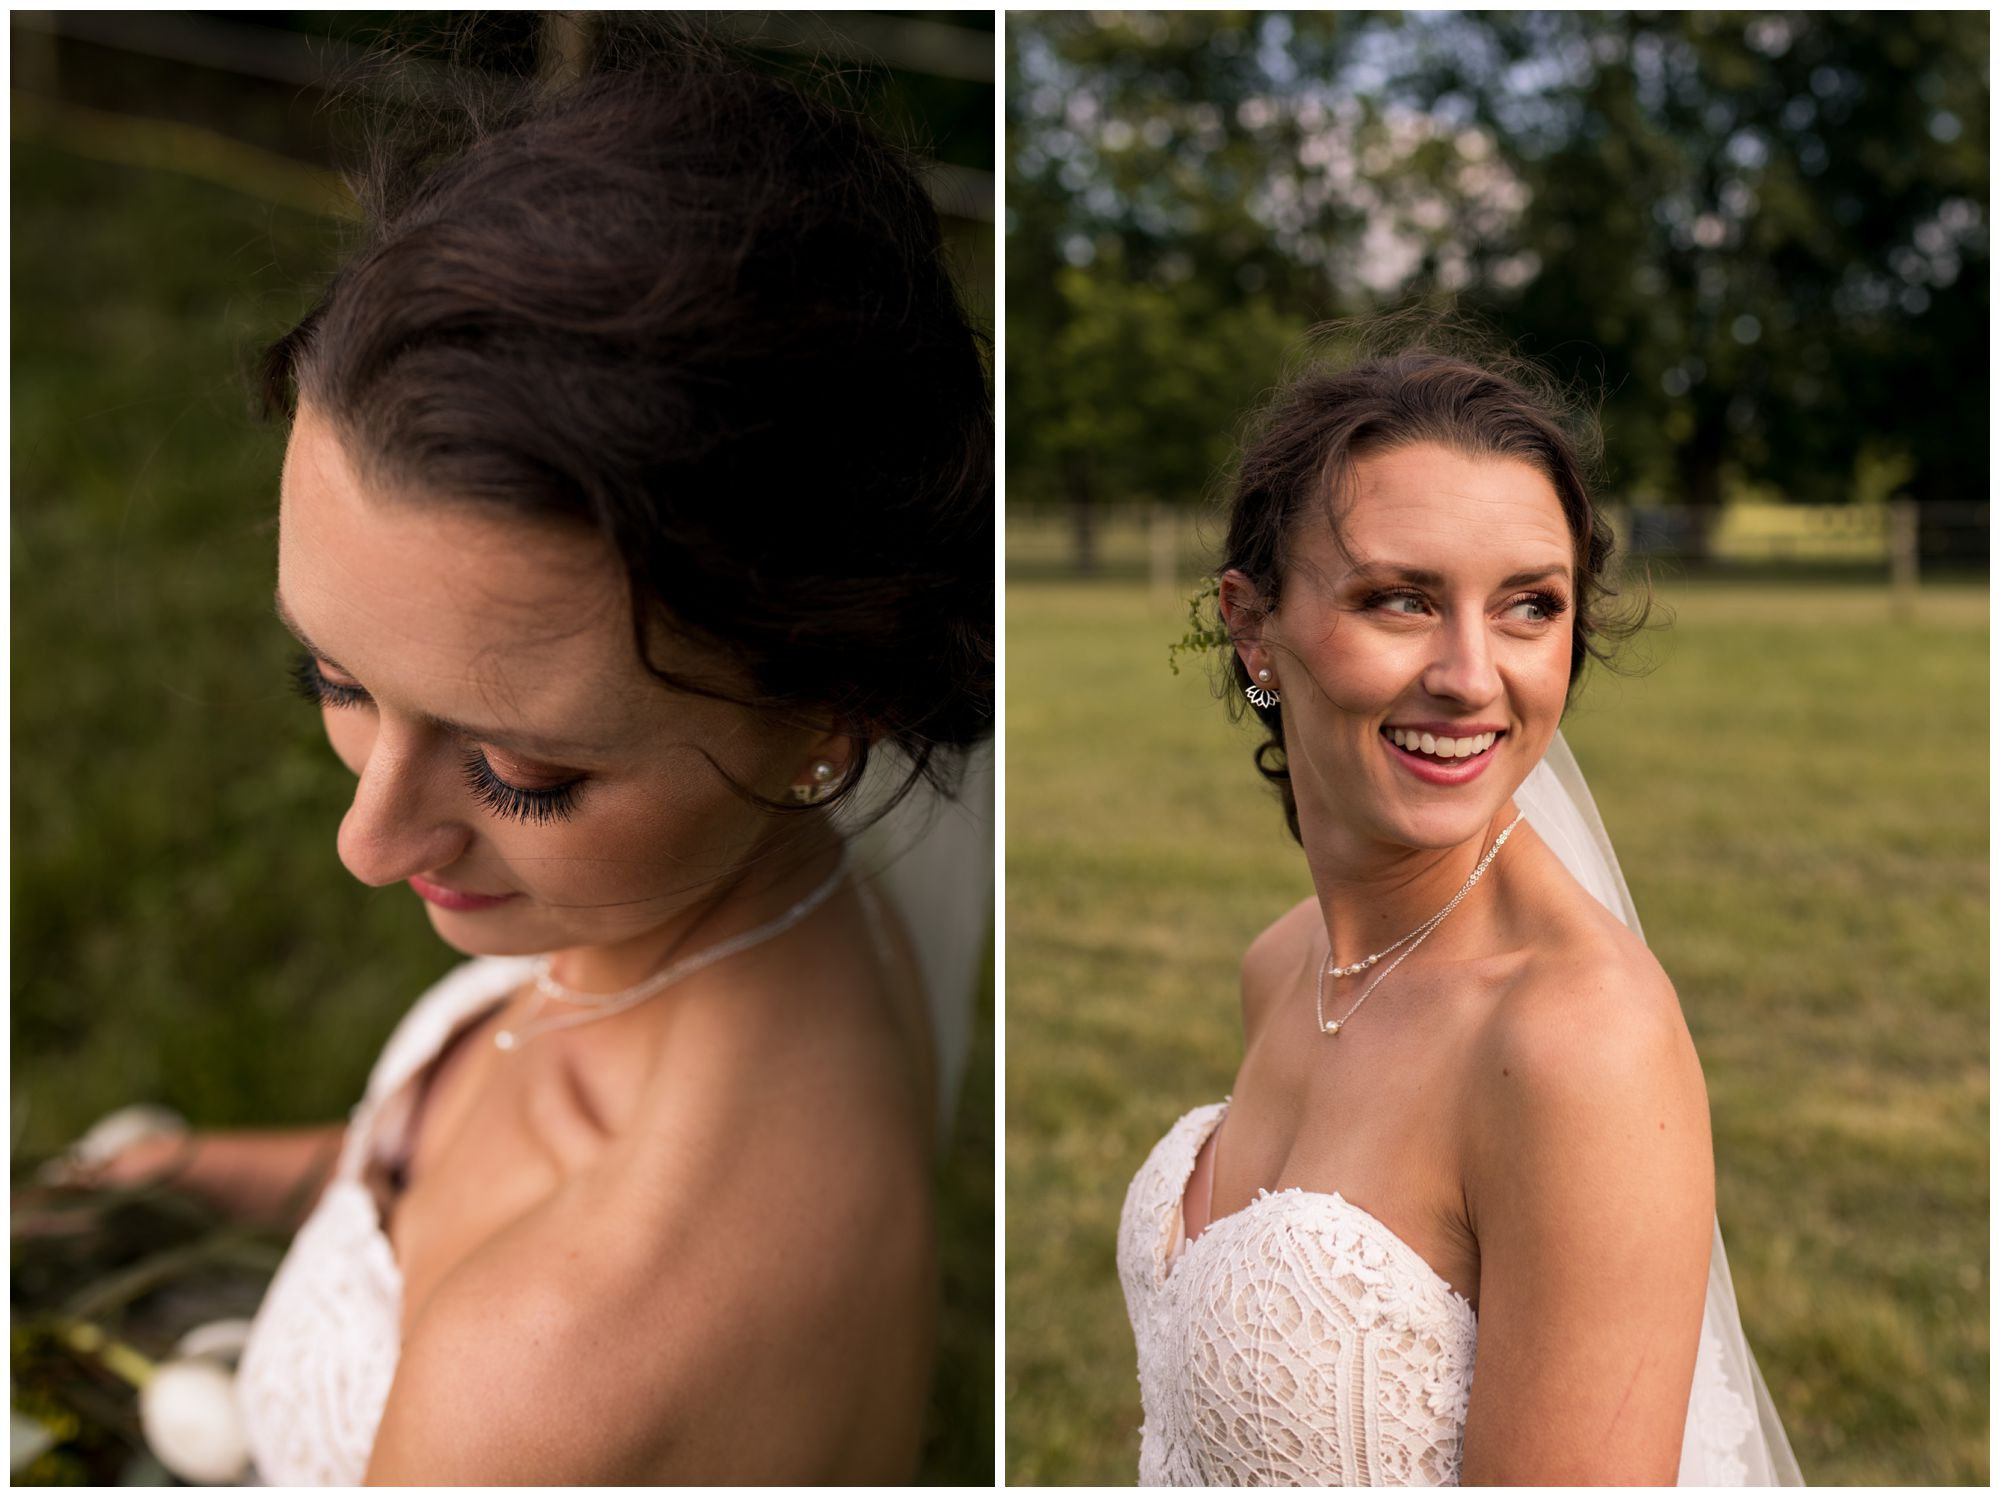 Bride portraits in white lace wedding gown after wedding ceremony in Indianapolis